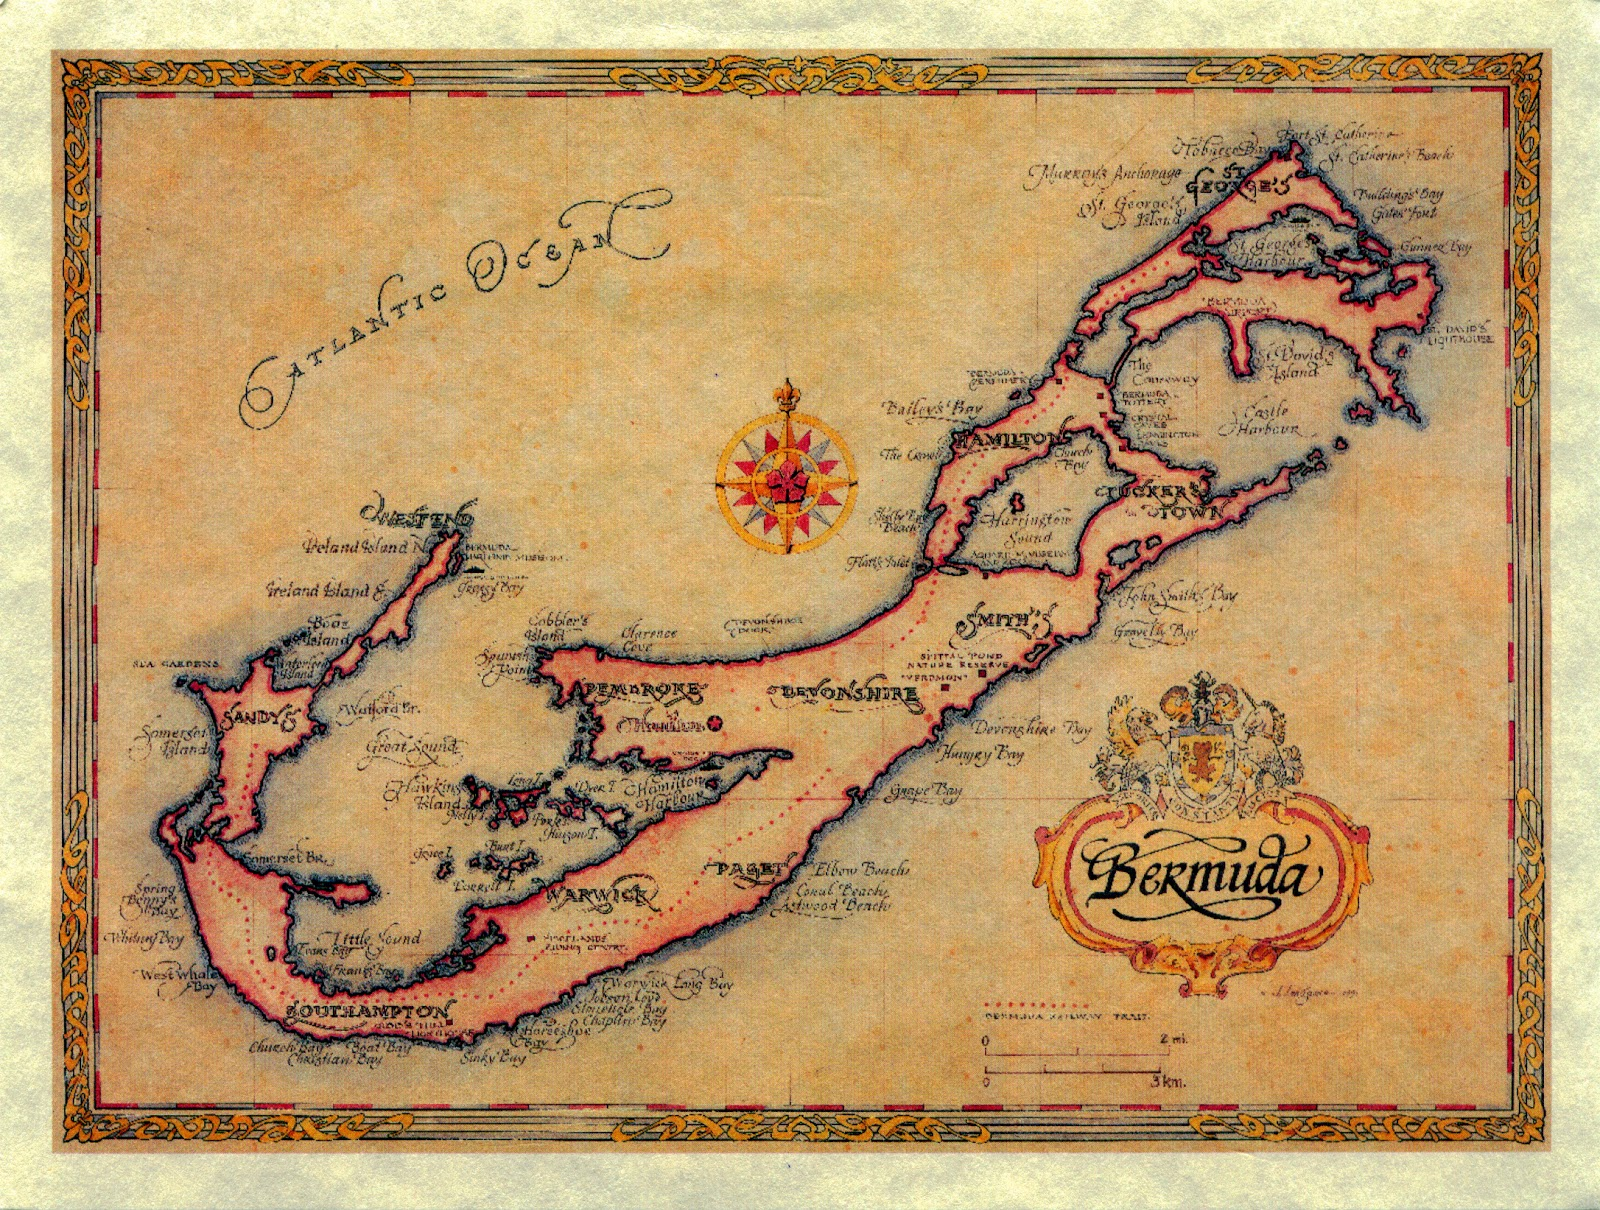 map of grand cayman with 1081 1082 Bermuda Map Of Archipelago on 735 moreover Futuristic Mountain Resorts further Lagoinha Do Leste Beach Florianopolis as well 865598011 further Margaritaville Resort Biloxi.